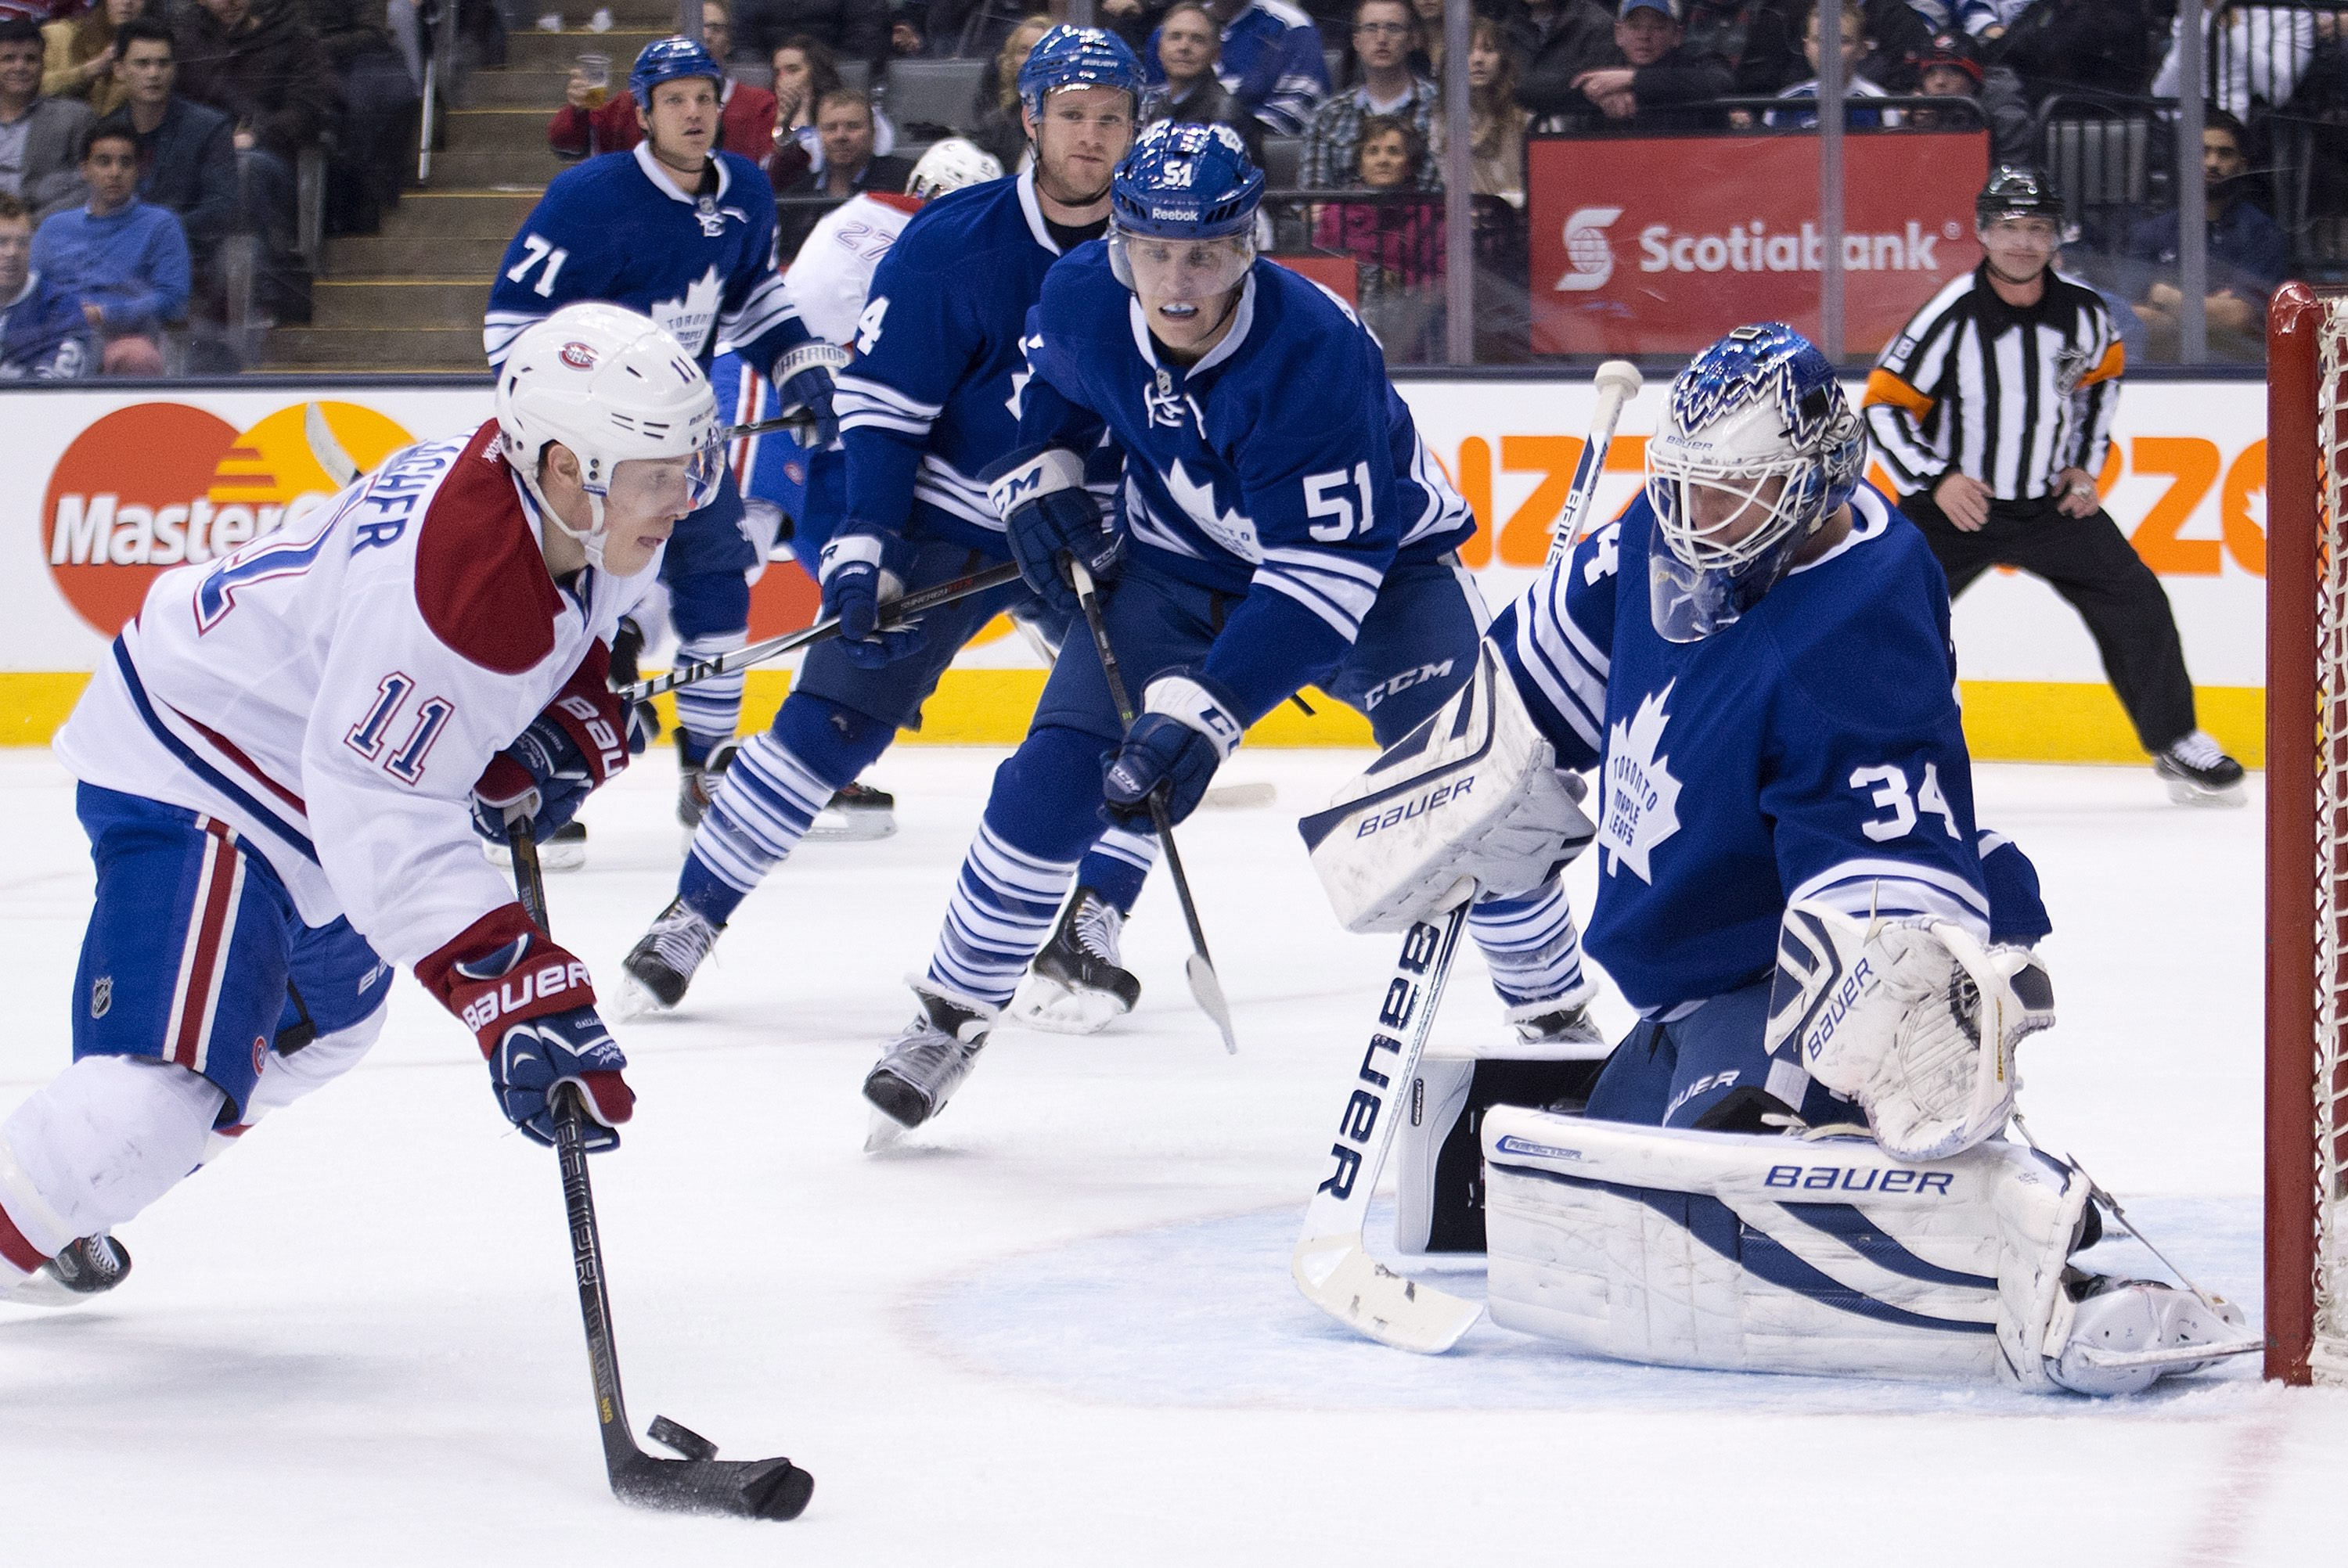 Toronto Maple goalie James Reimer, right, watches as Leafs Montreal Canadiens forward Brendan Gallagher, left, miss plays the puck during the first period NHL hockey game action in Toronto on Saturday, March 22, 2014